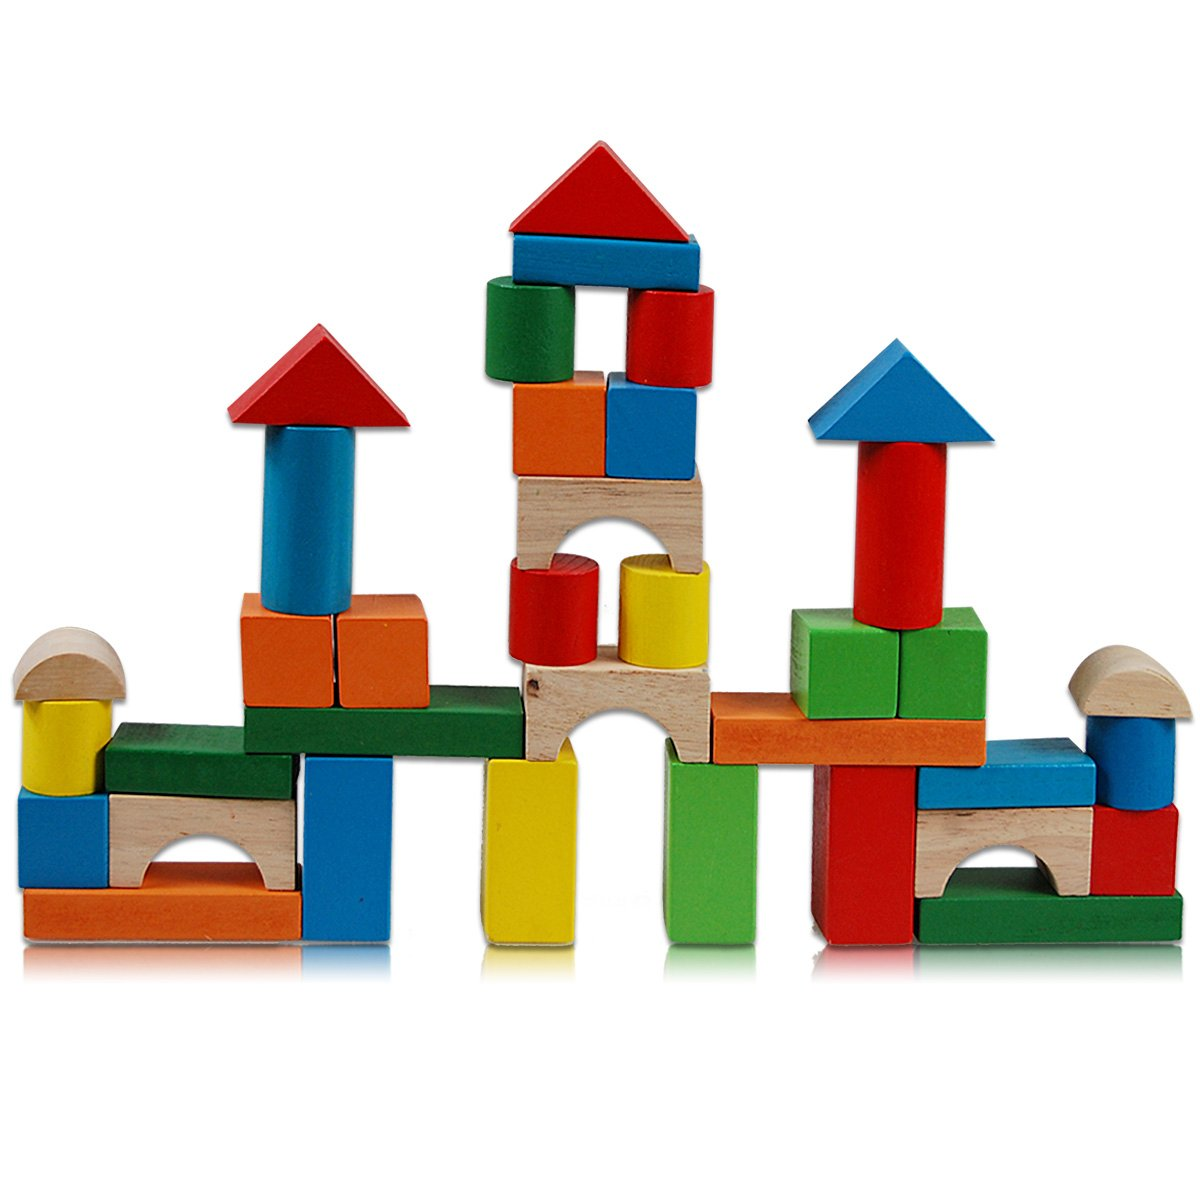 1200x1200 Cartoon Wooden Blocks , Building A House With Wooden Blocks